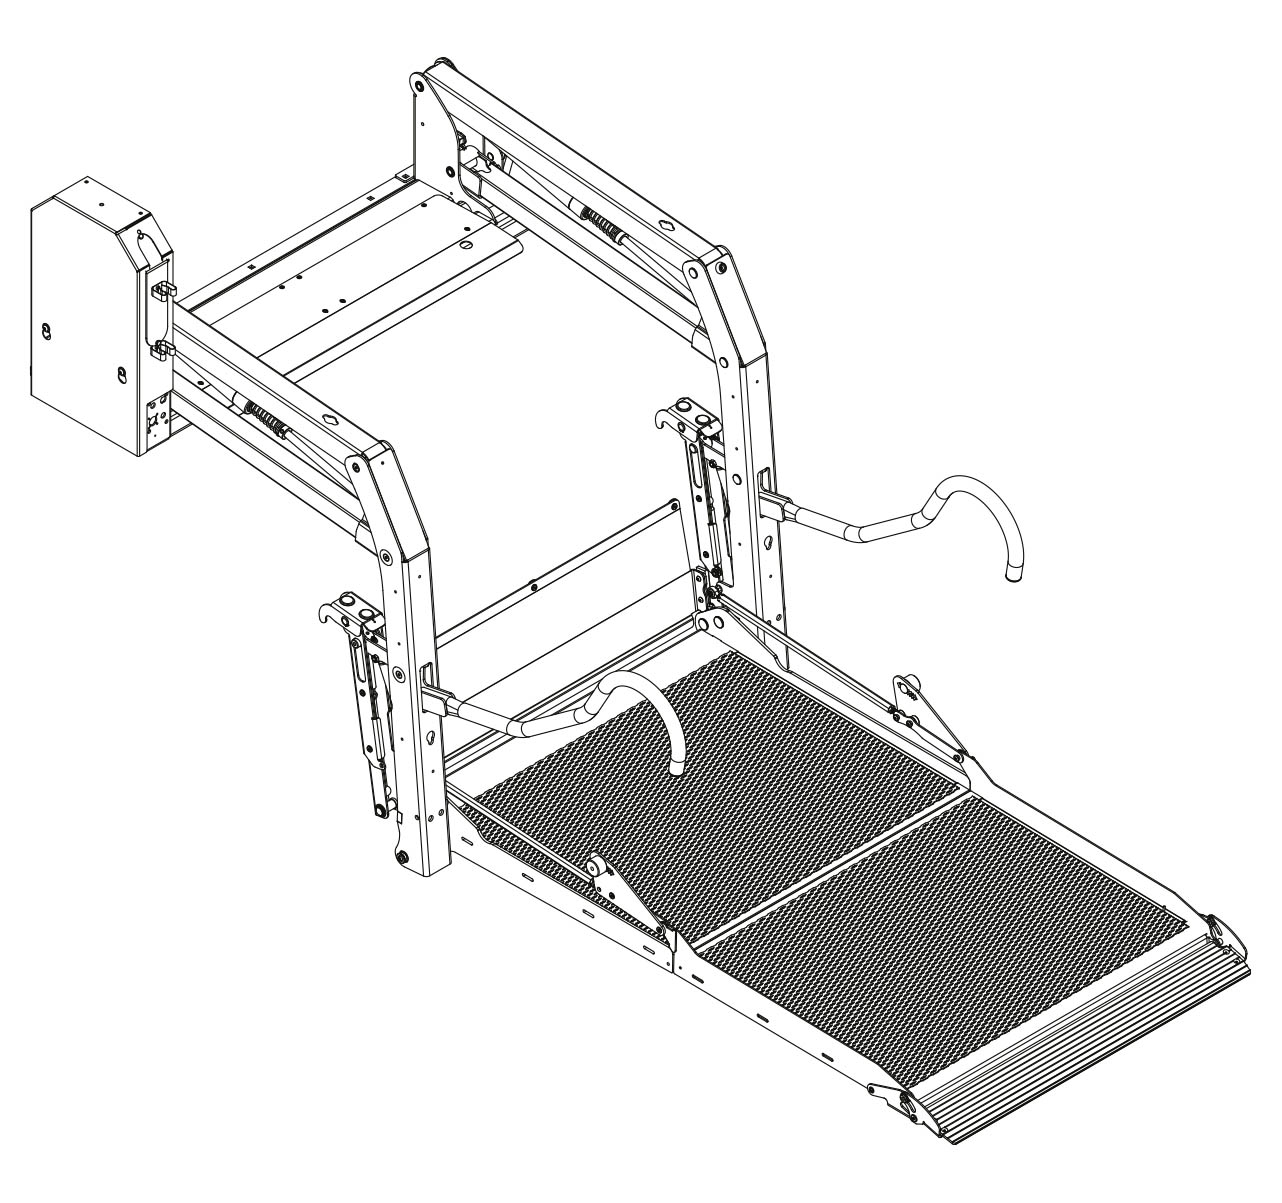 Illustration of an E-1500 folding lift